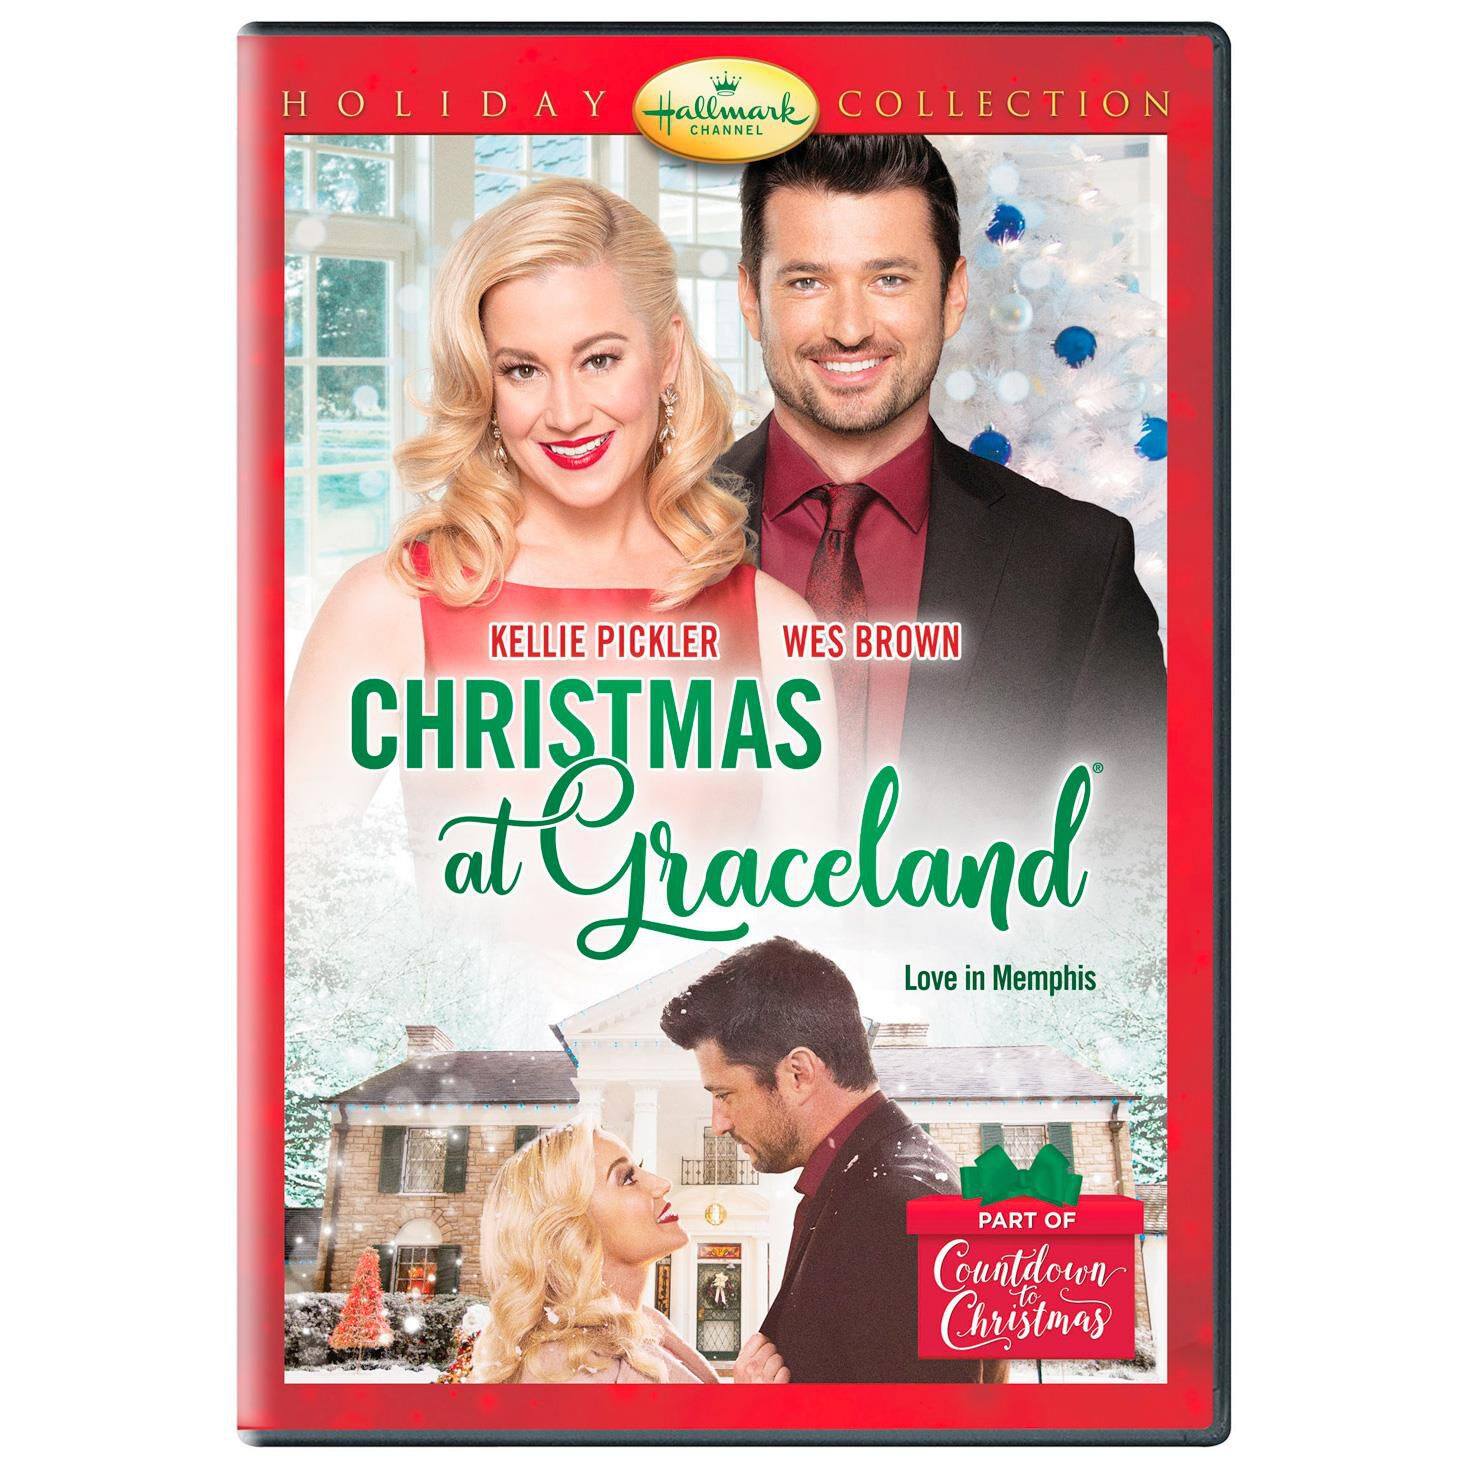 Christmas At Graceland Hallmark.Christmas At Graceland Dvd